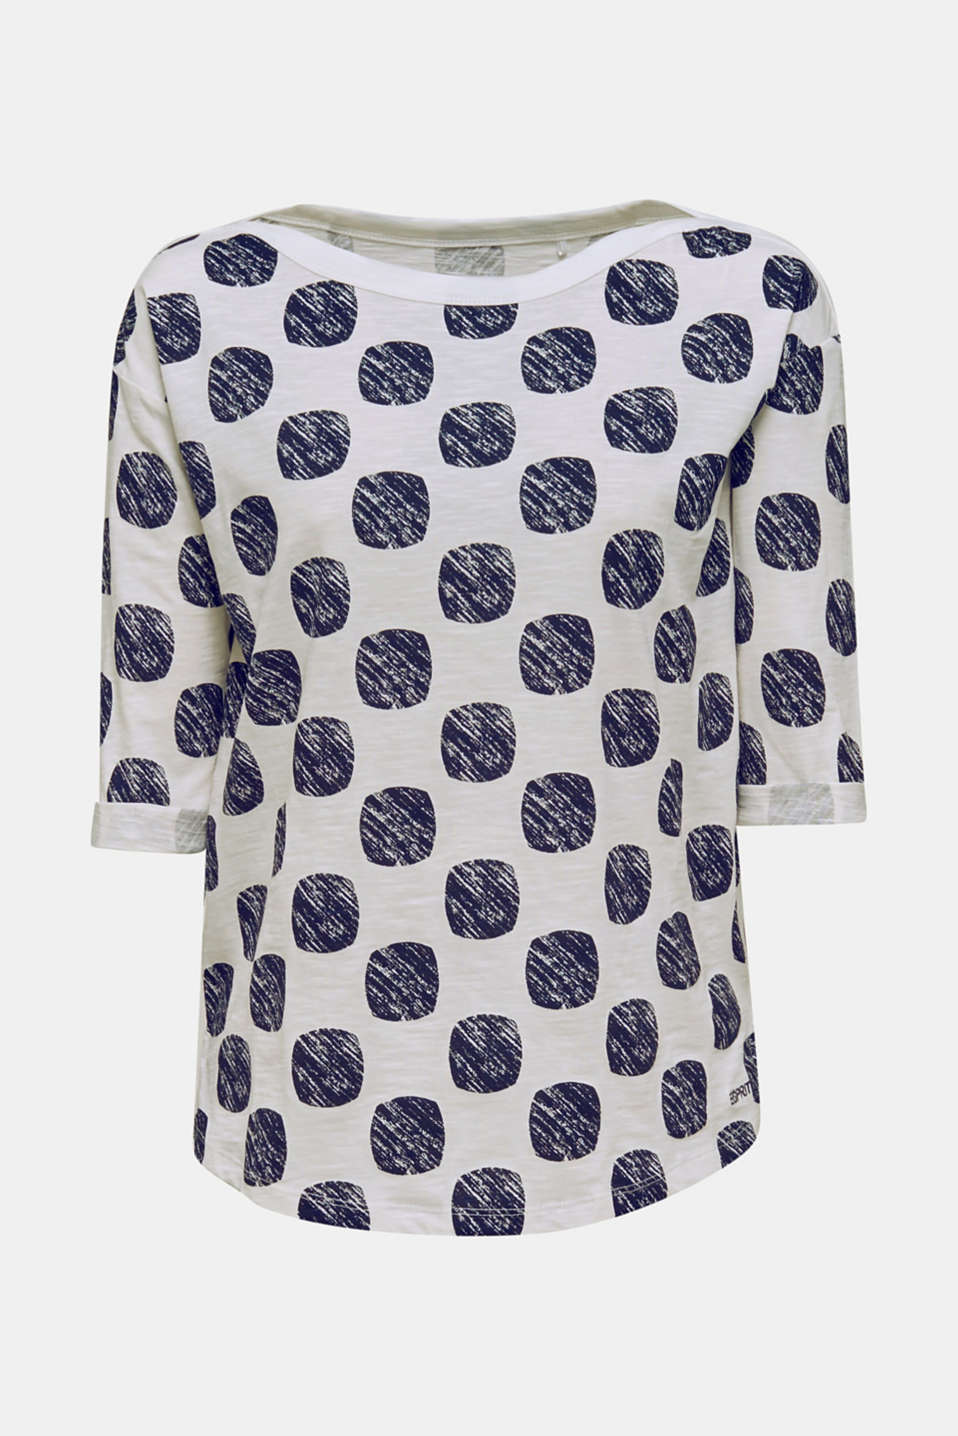 Slub T-shirt with polka dot print, 100% cotton, NAVY, detail image number 6